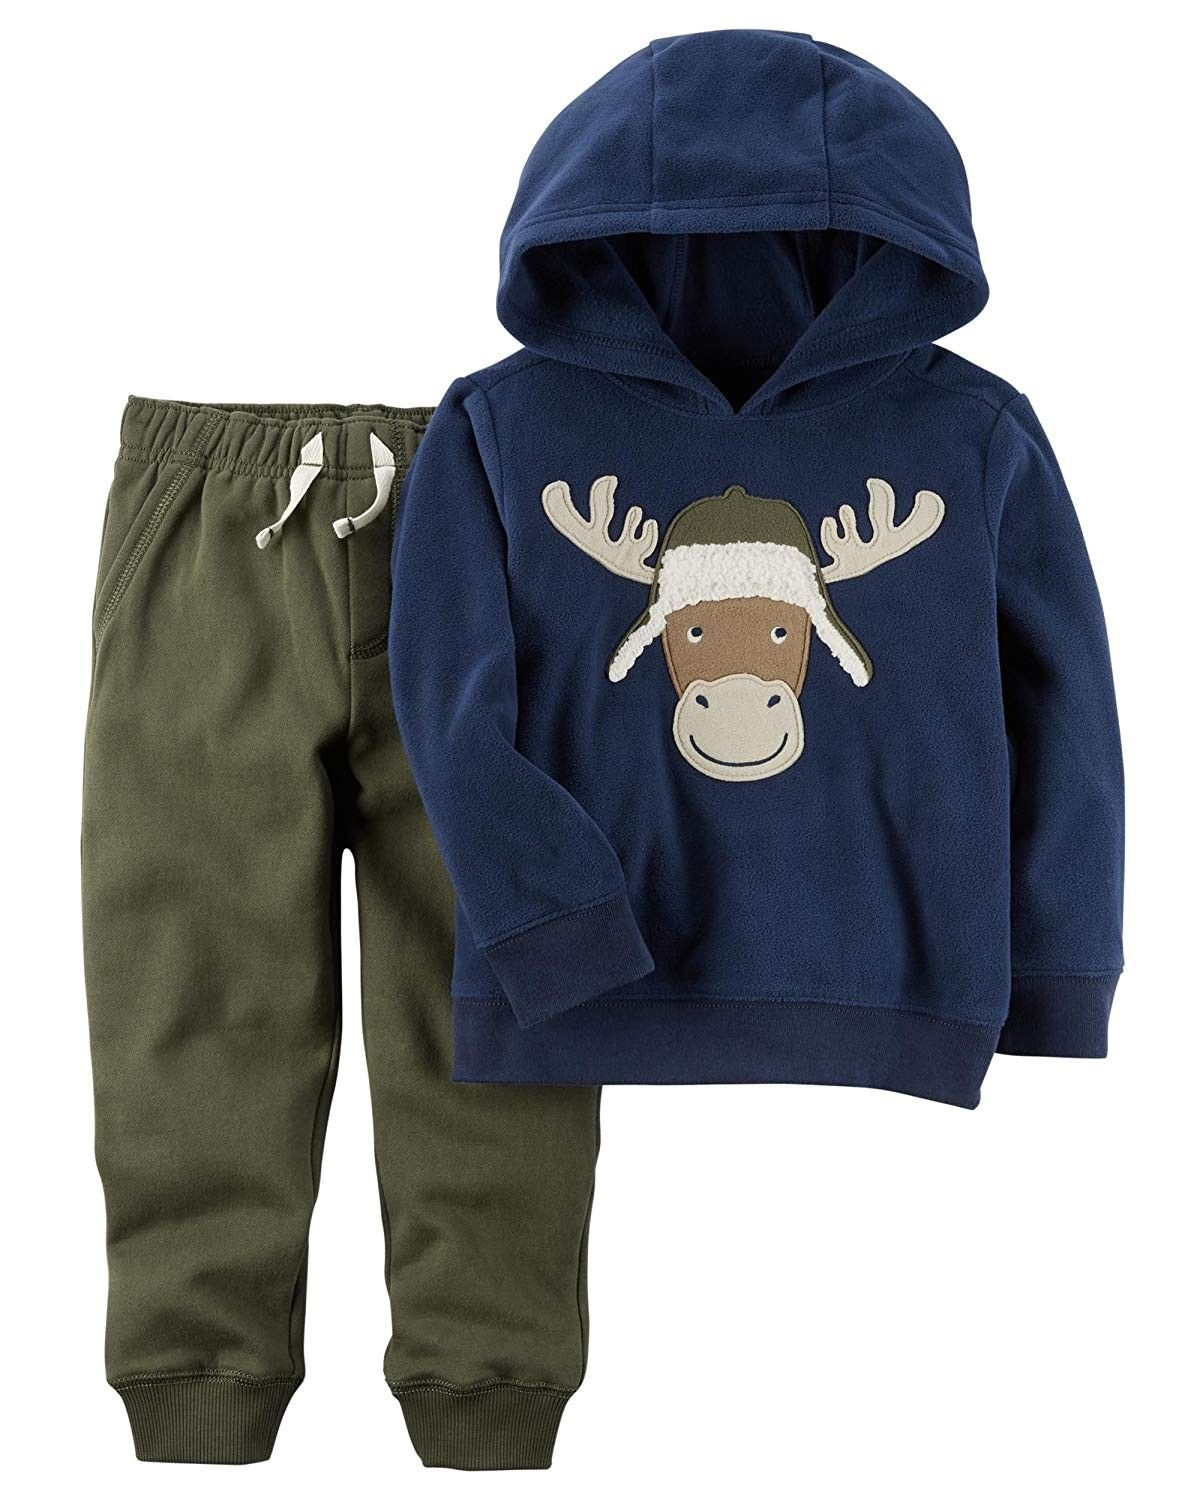 Carters Boys 3M-4T 2 Piece Long Sleeve Top and Pants Set